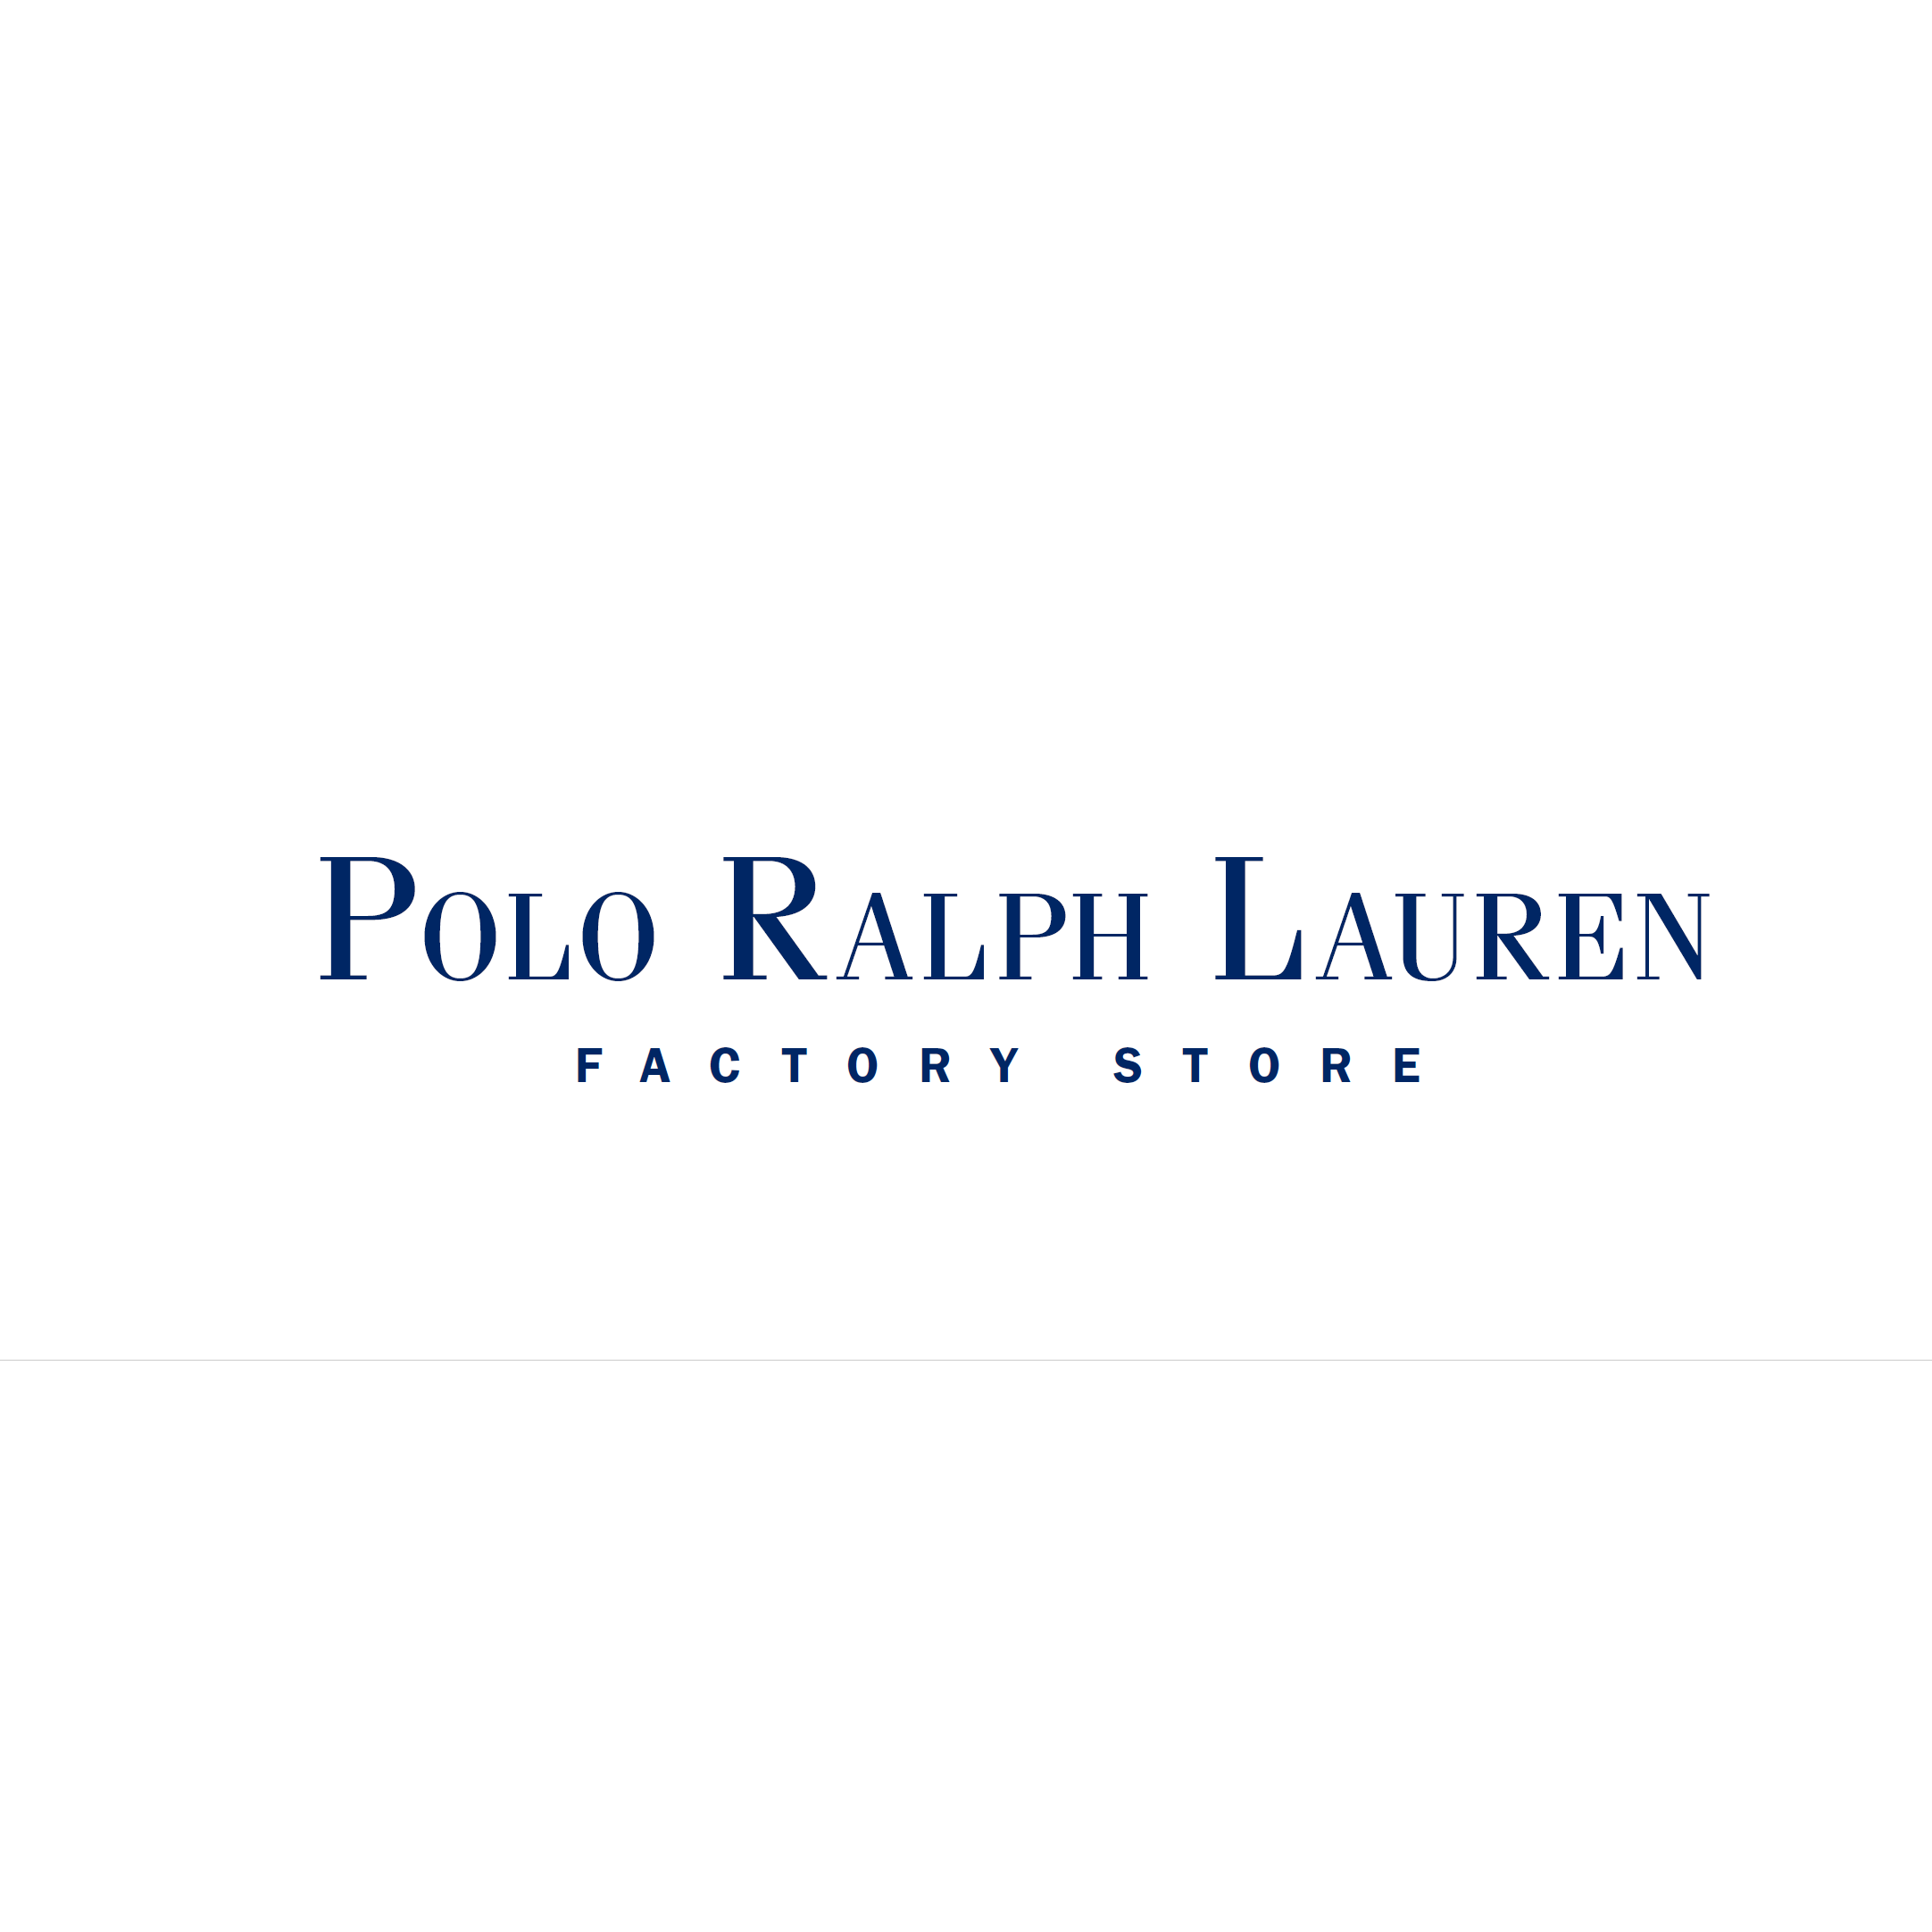 Polo Ralph Lauren Factory Store - Auburn, WA 98001 - (253)833-0884 | ShowMeLocal.com